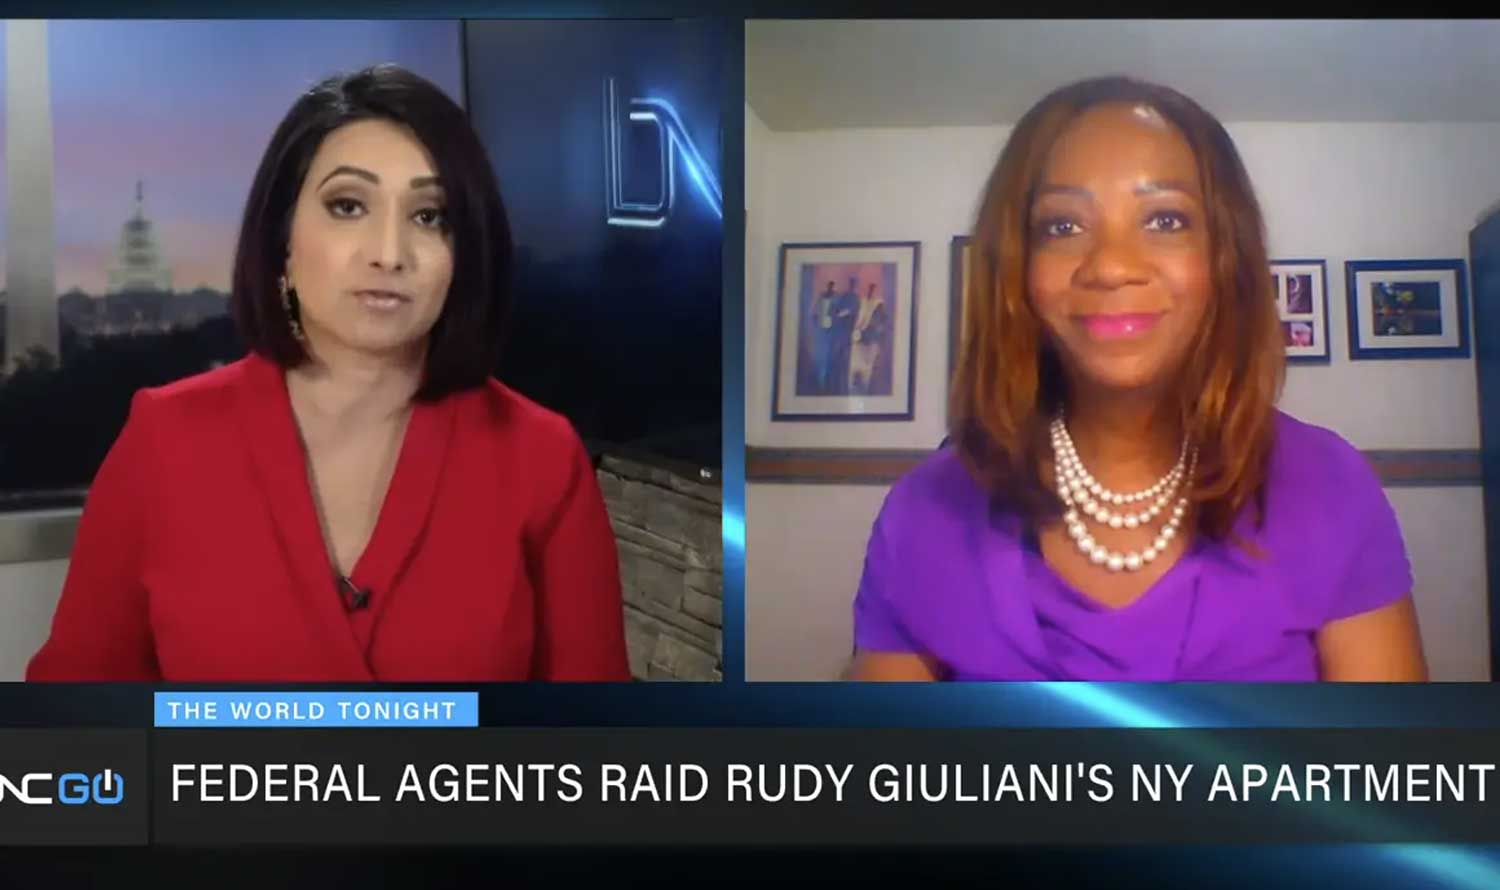 Black News Channel: Federal Agents Raid Rudy Guiliani's Apartment